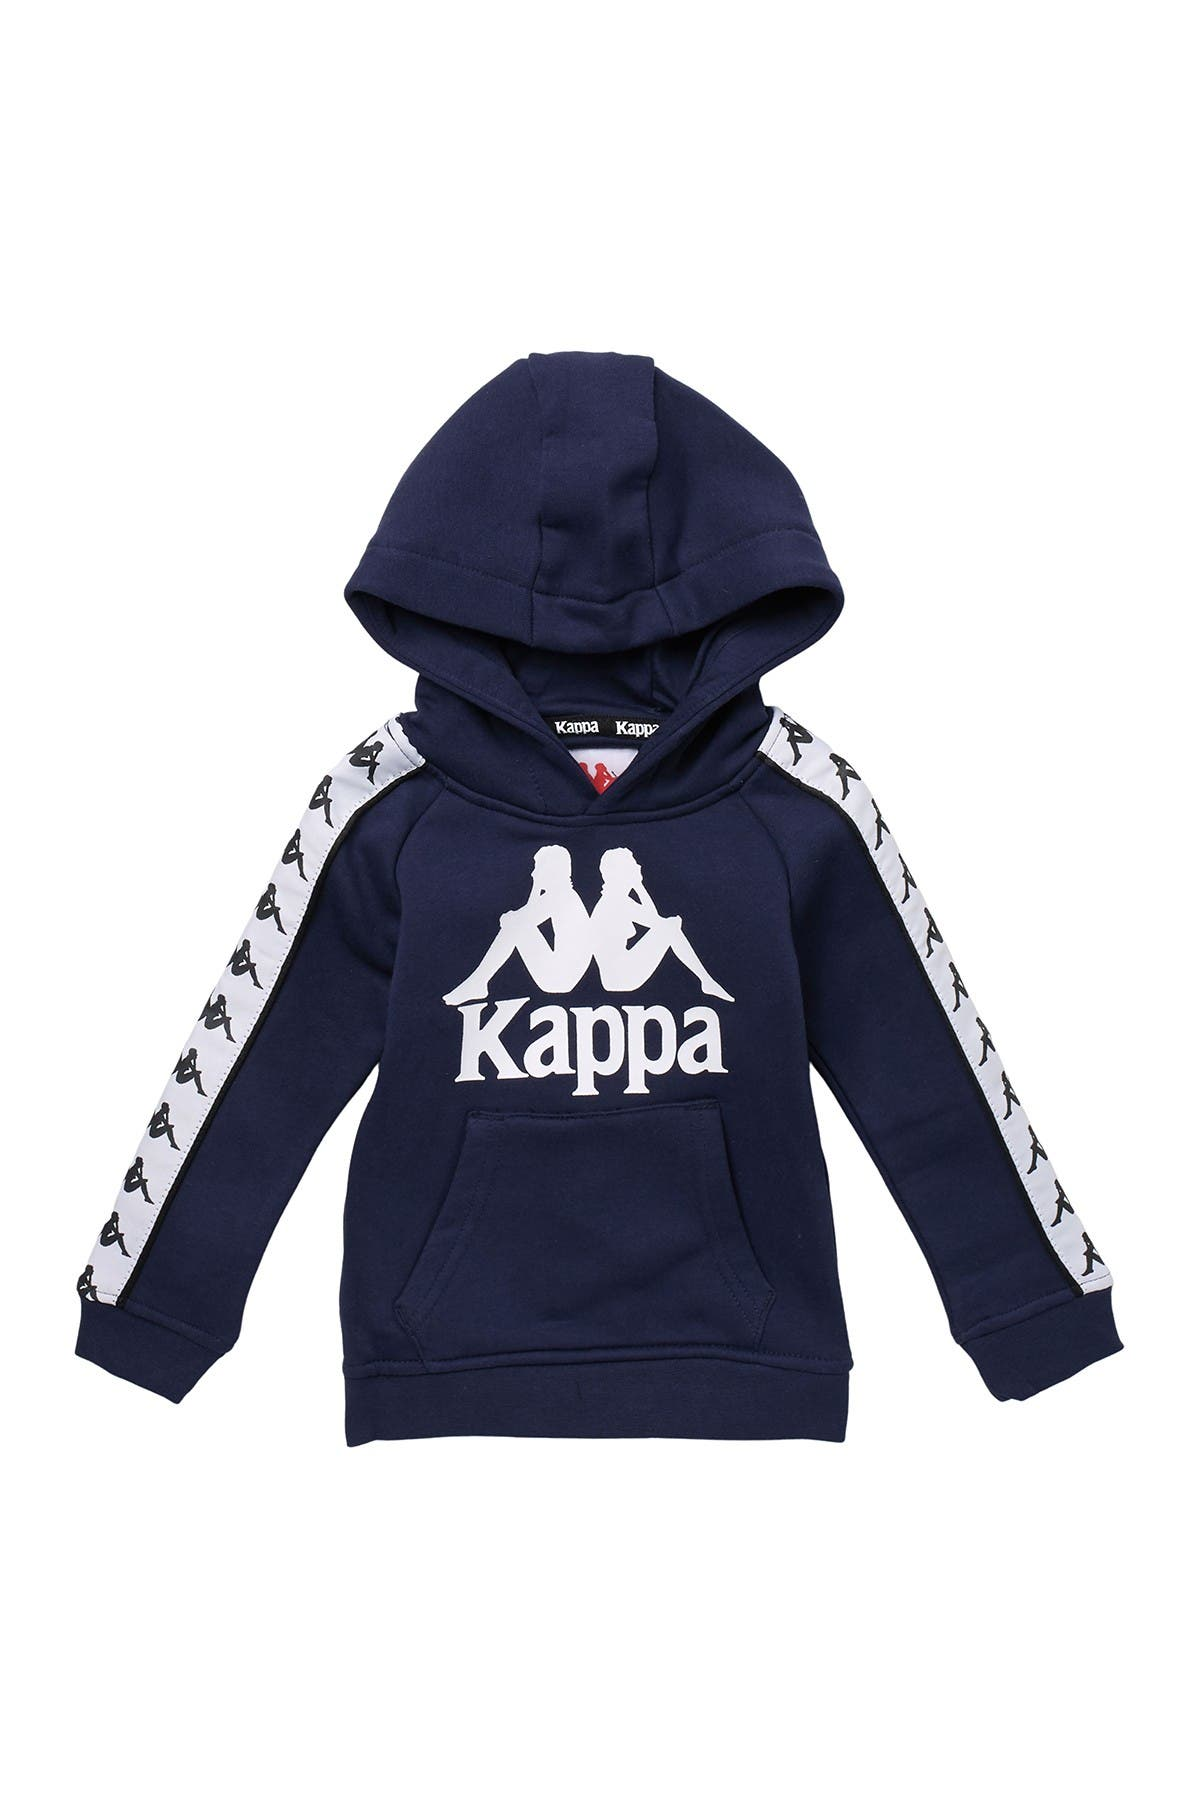 Image of Kappa Active Authentic Hurtado Zip Hoodie